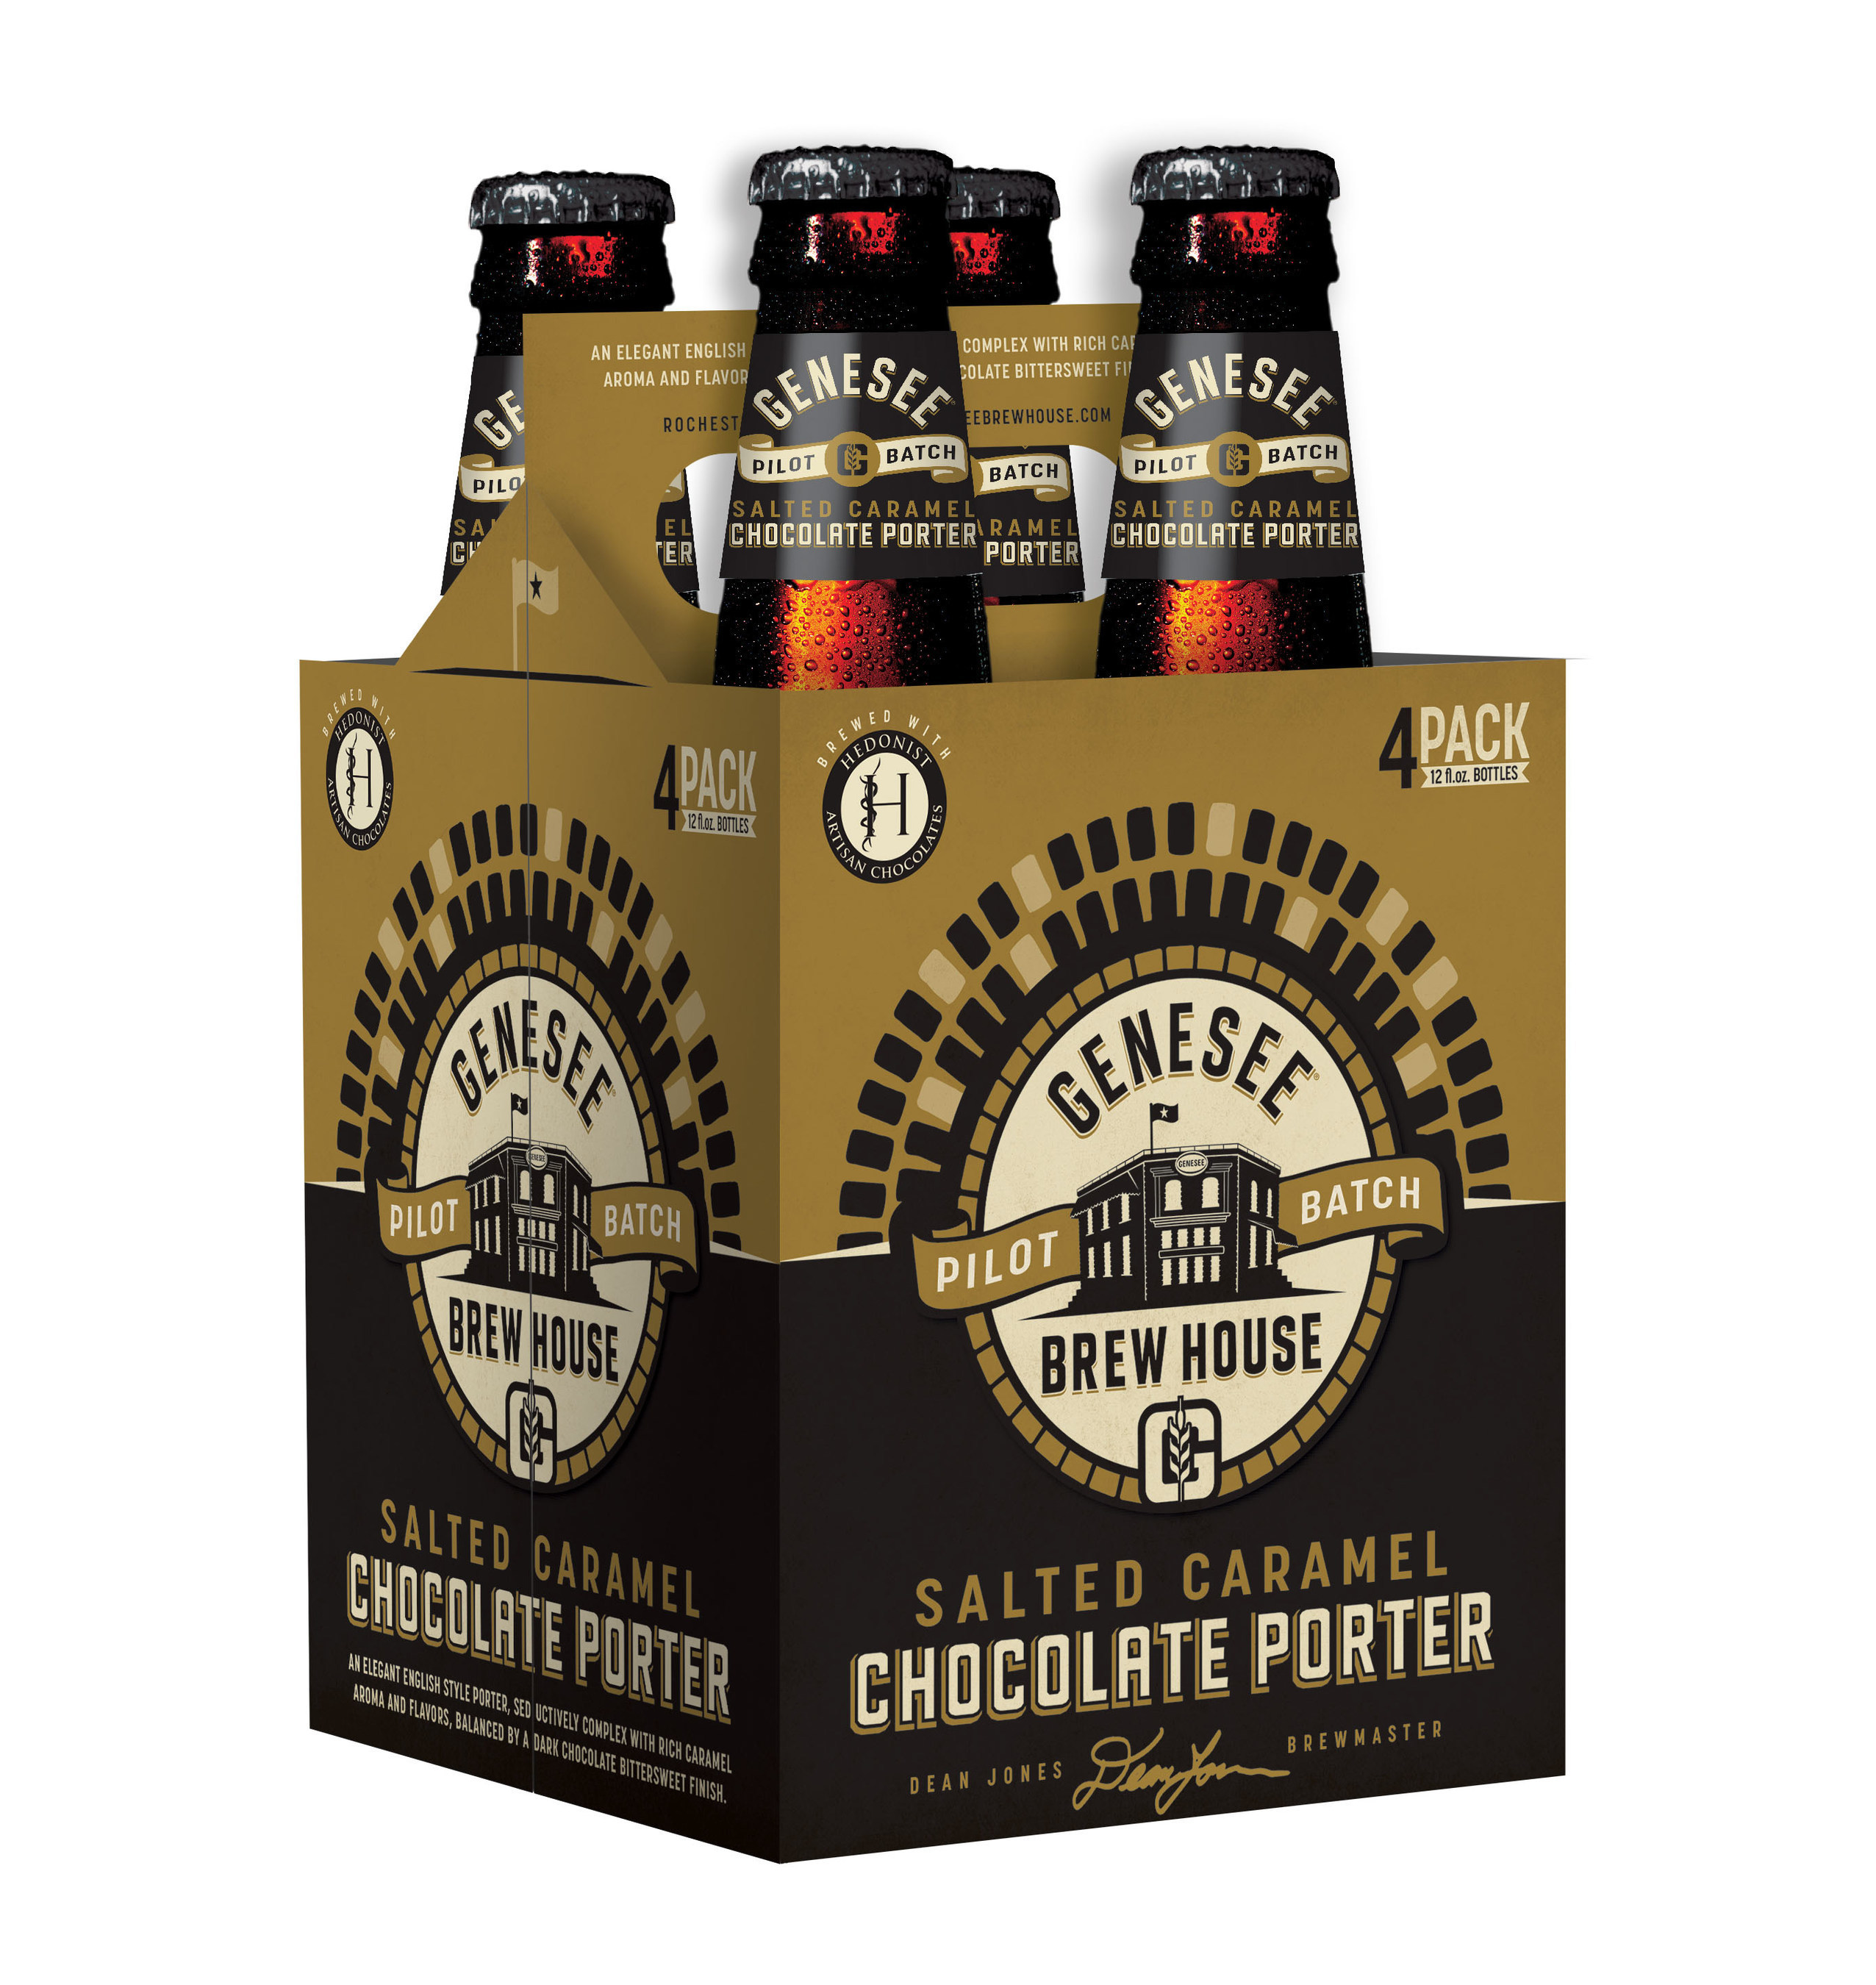 Genesee Brewery Launches New Salted Caramel Chocolate Porter ...